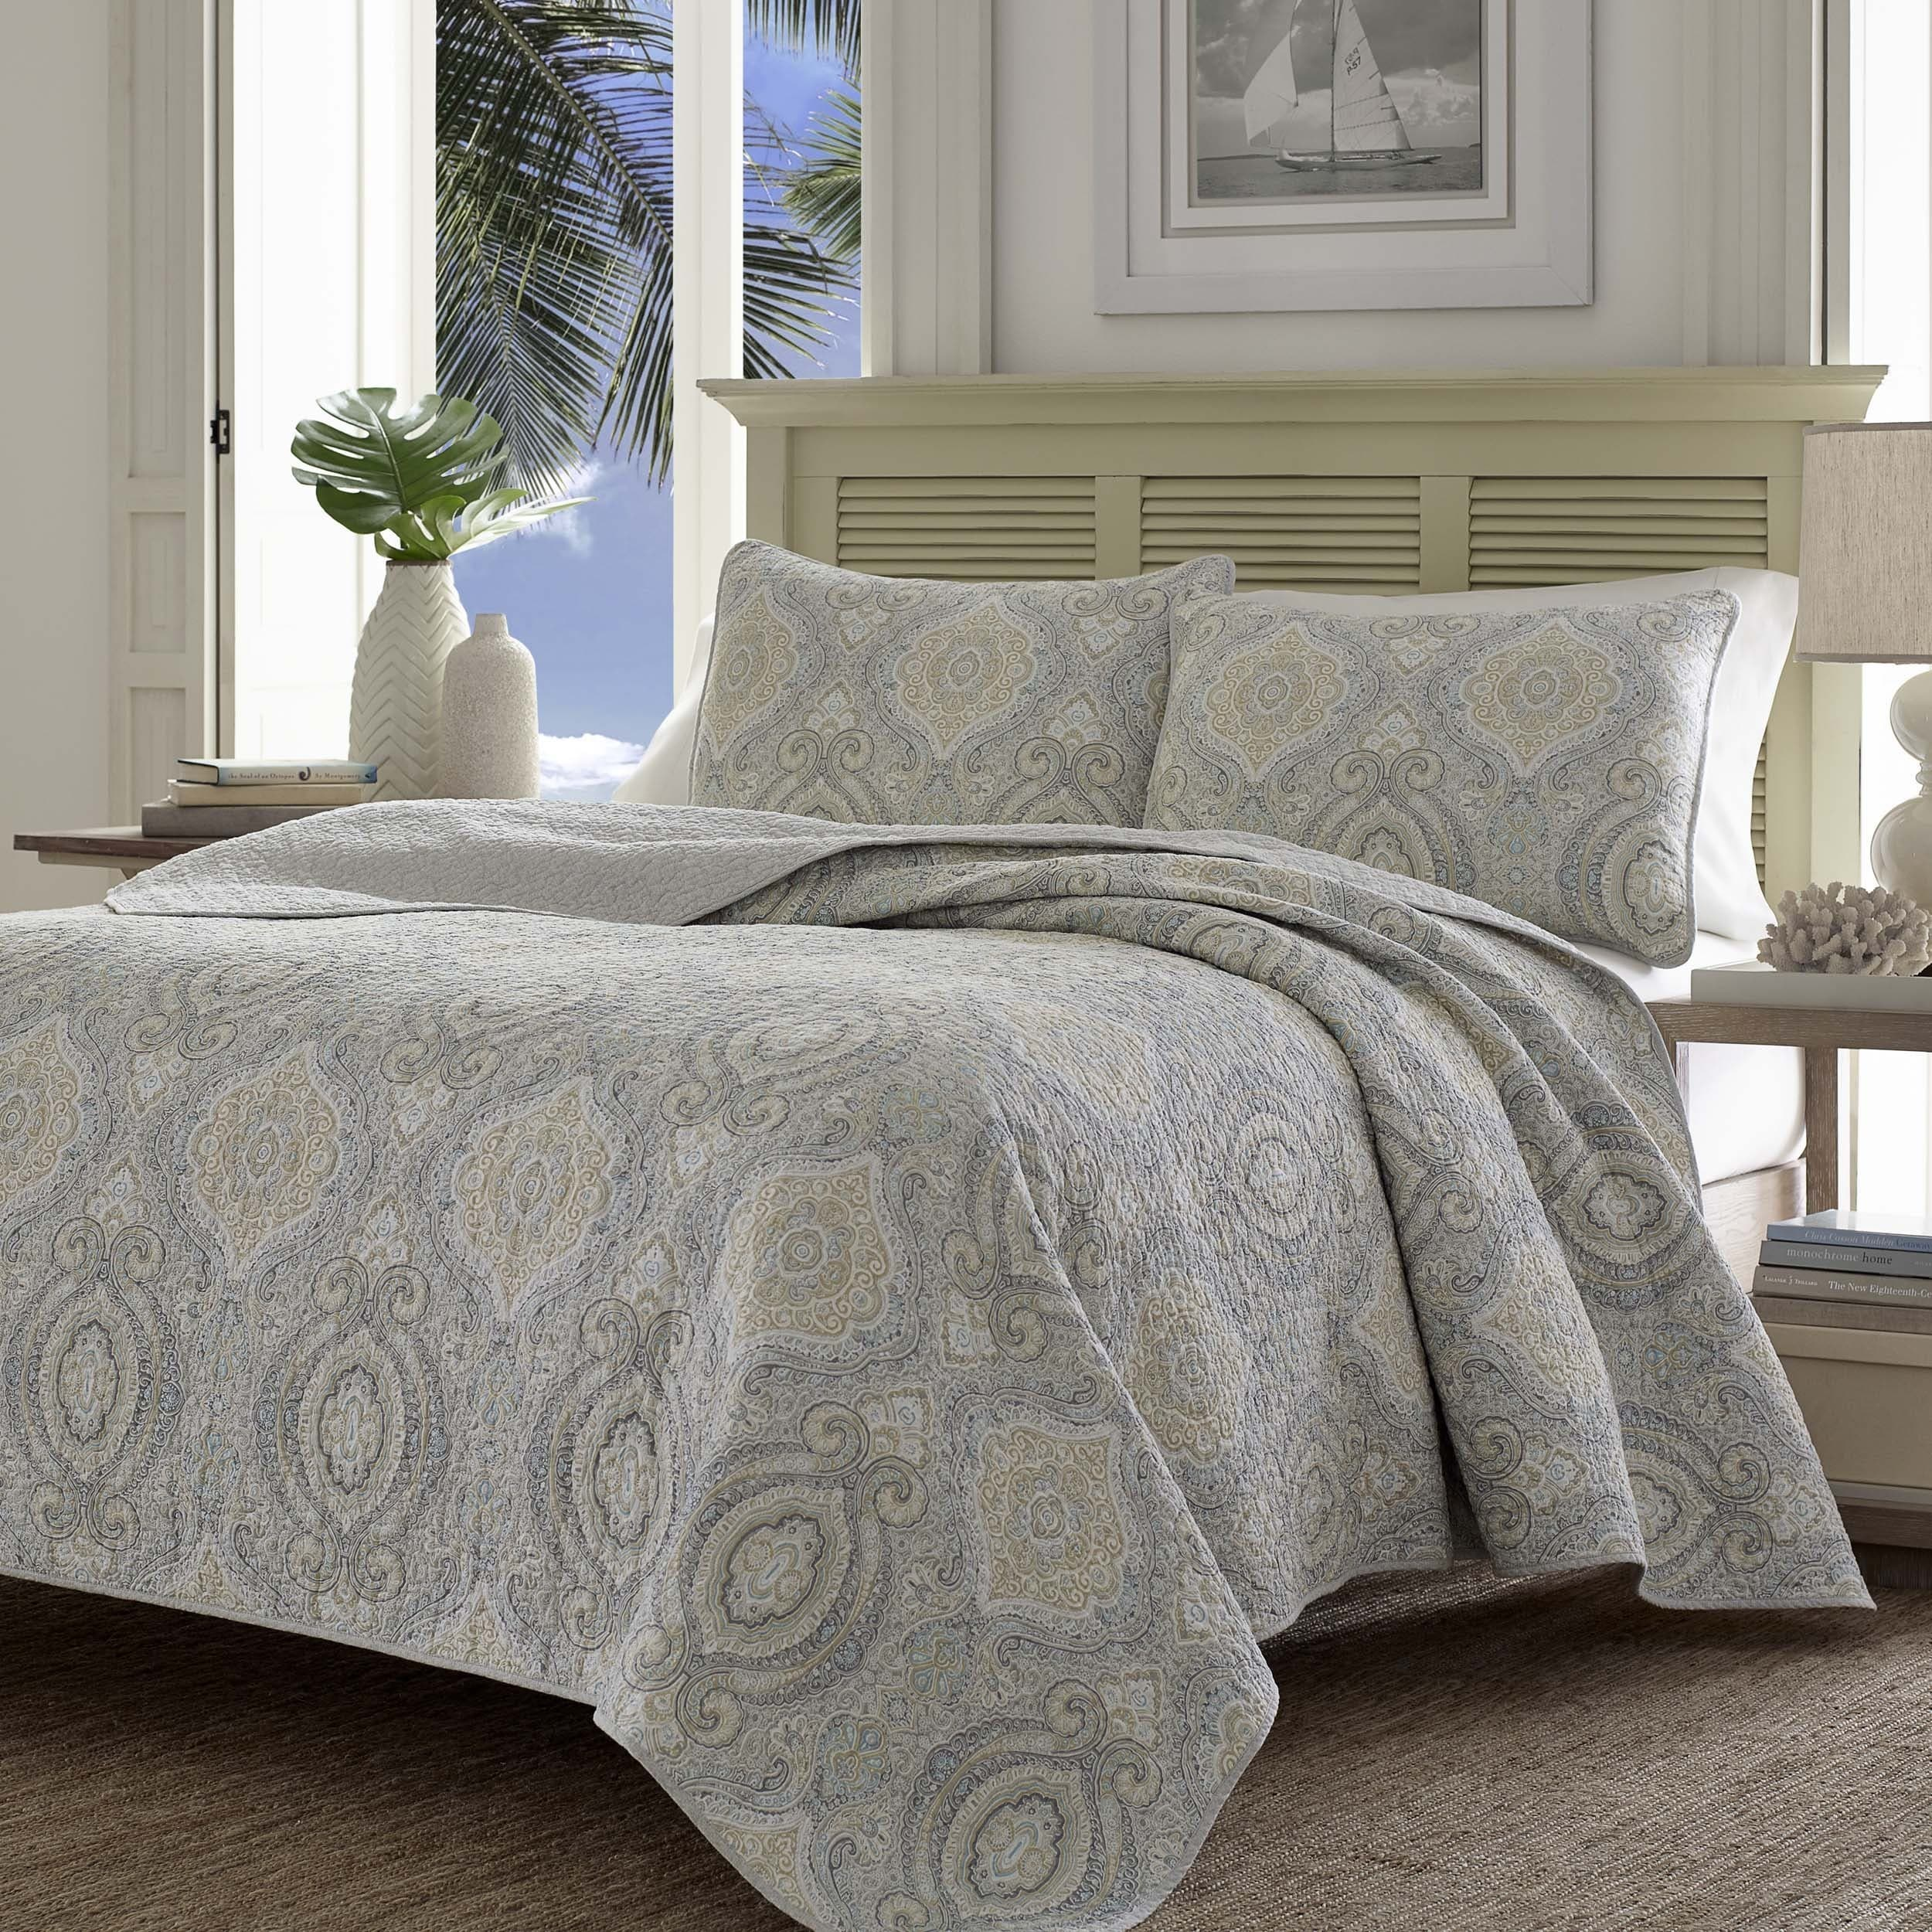 size bedding of quilt queen piece p starfish hnnsi picture s ocean set conch comforter and gray